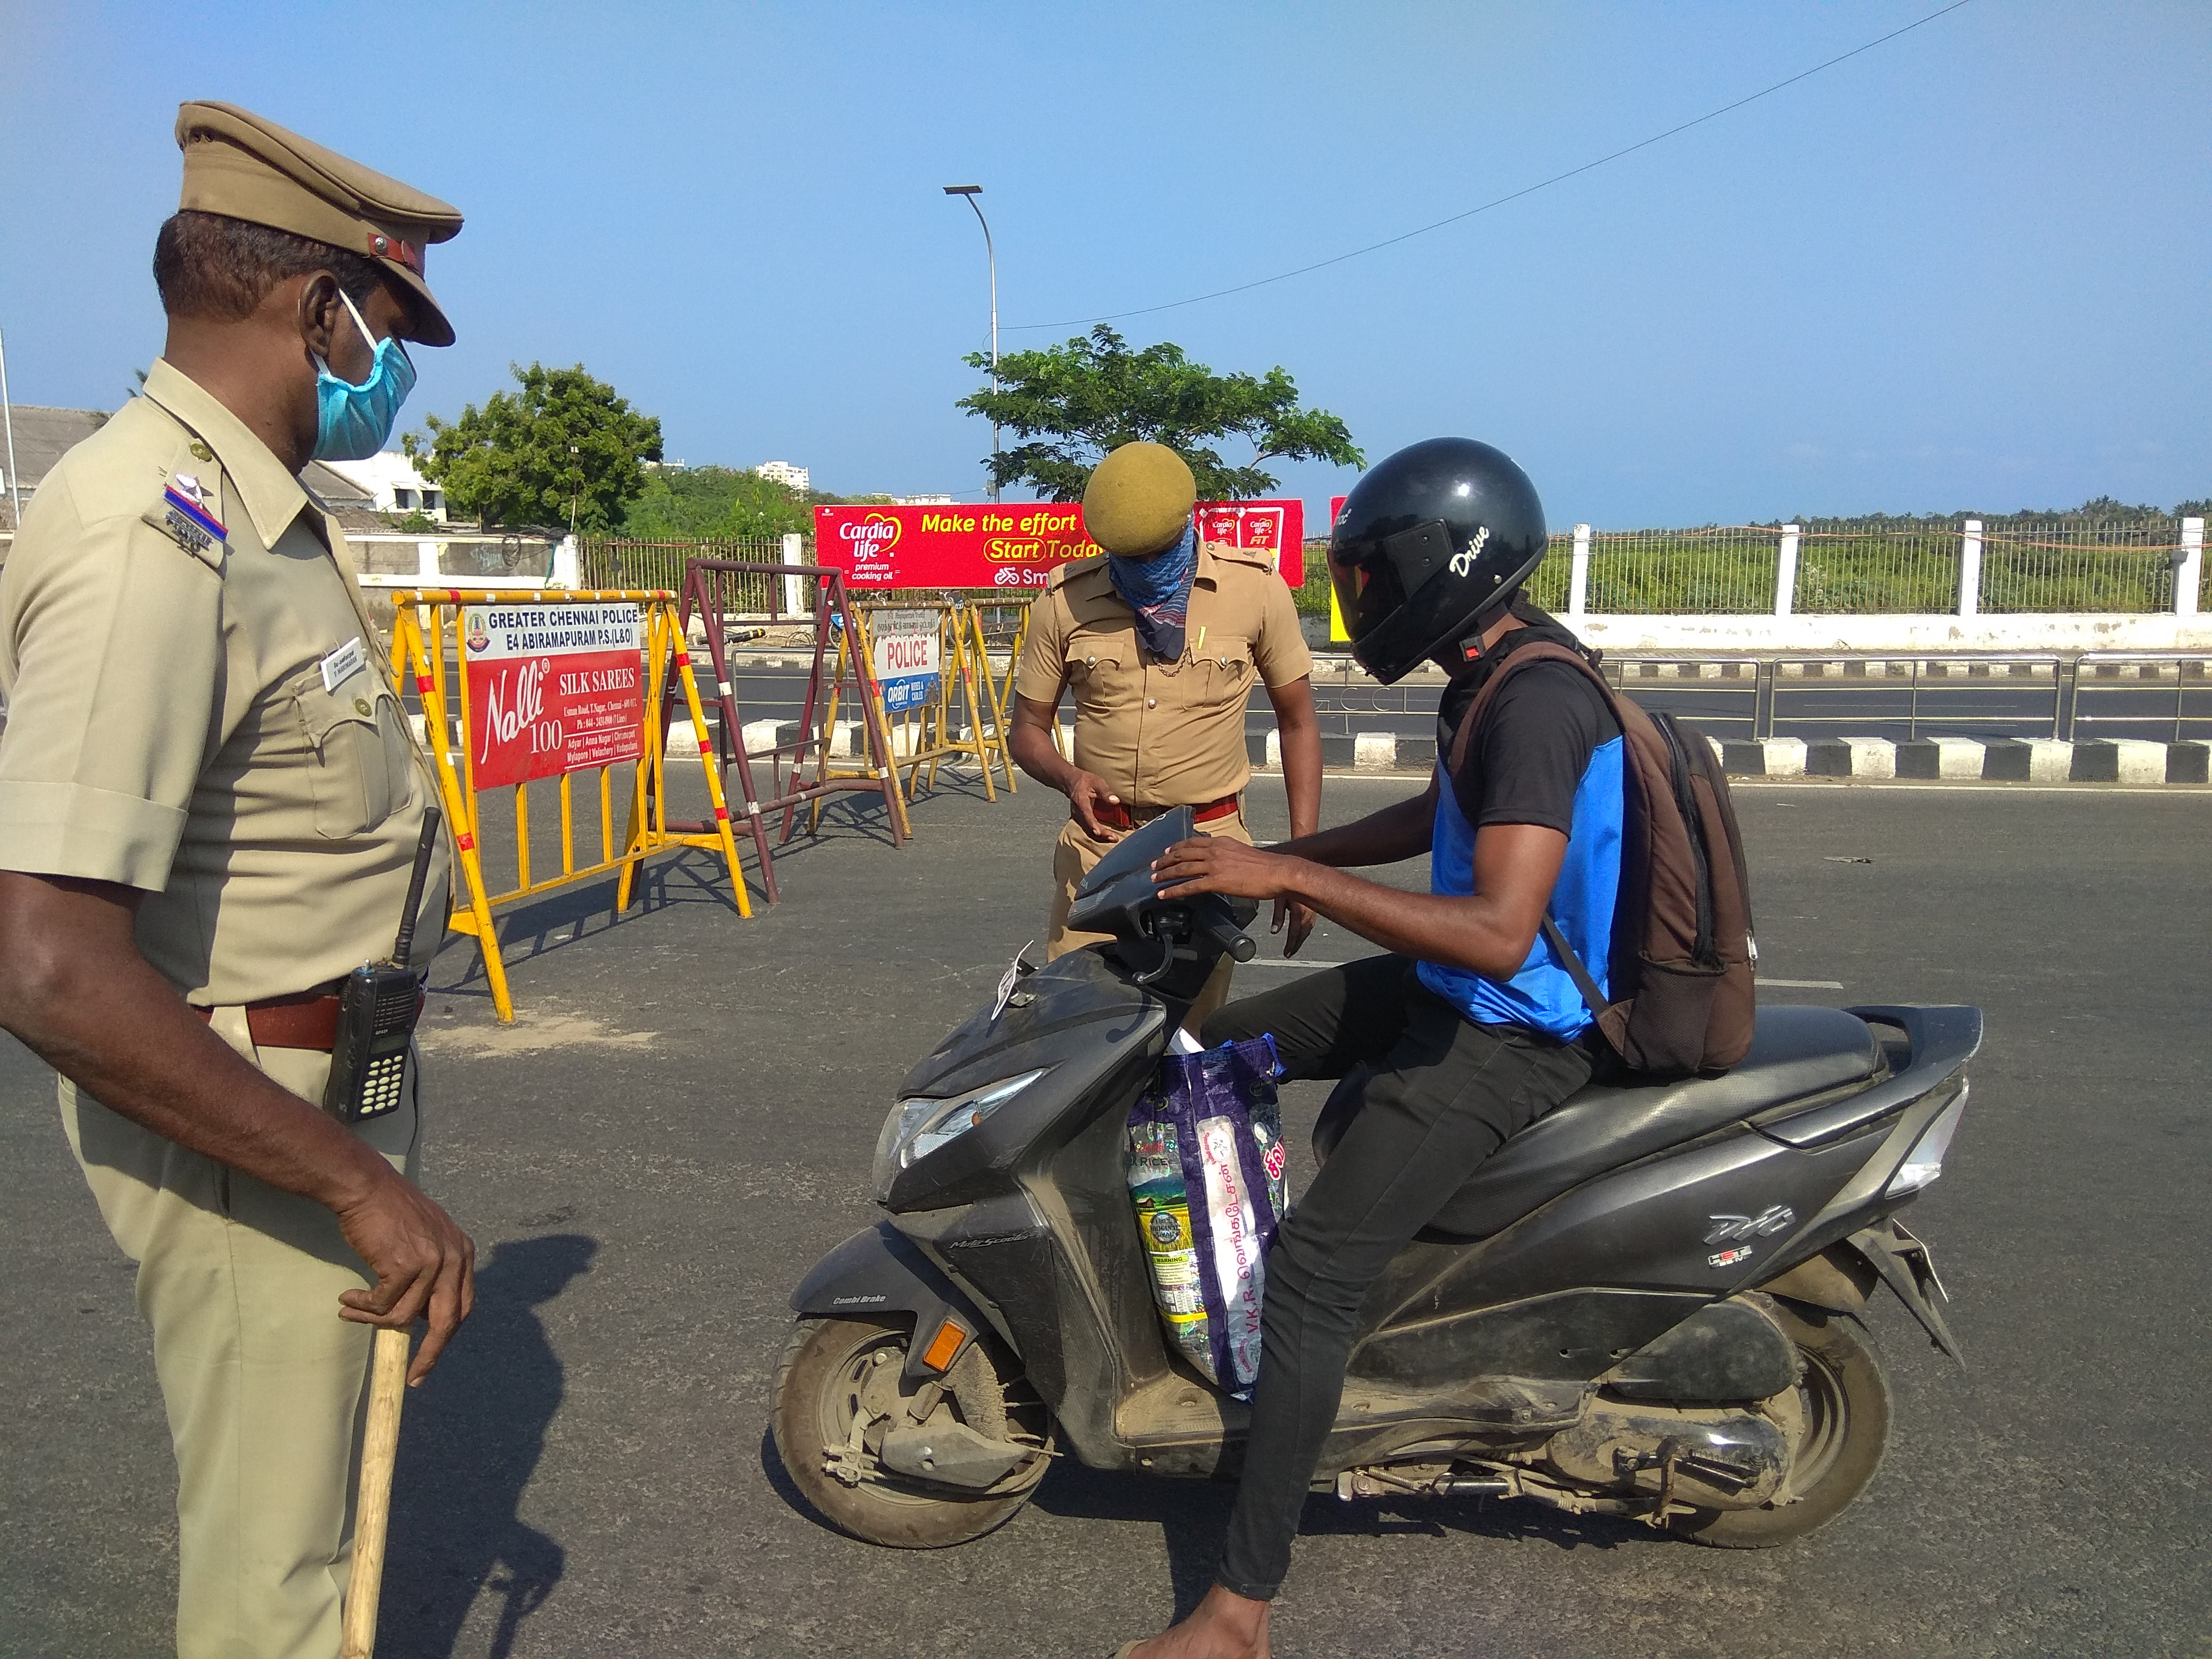 Traffic Police Pulling Car Over Stock Photo - Download